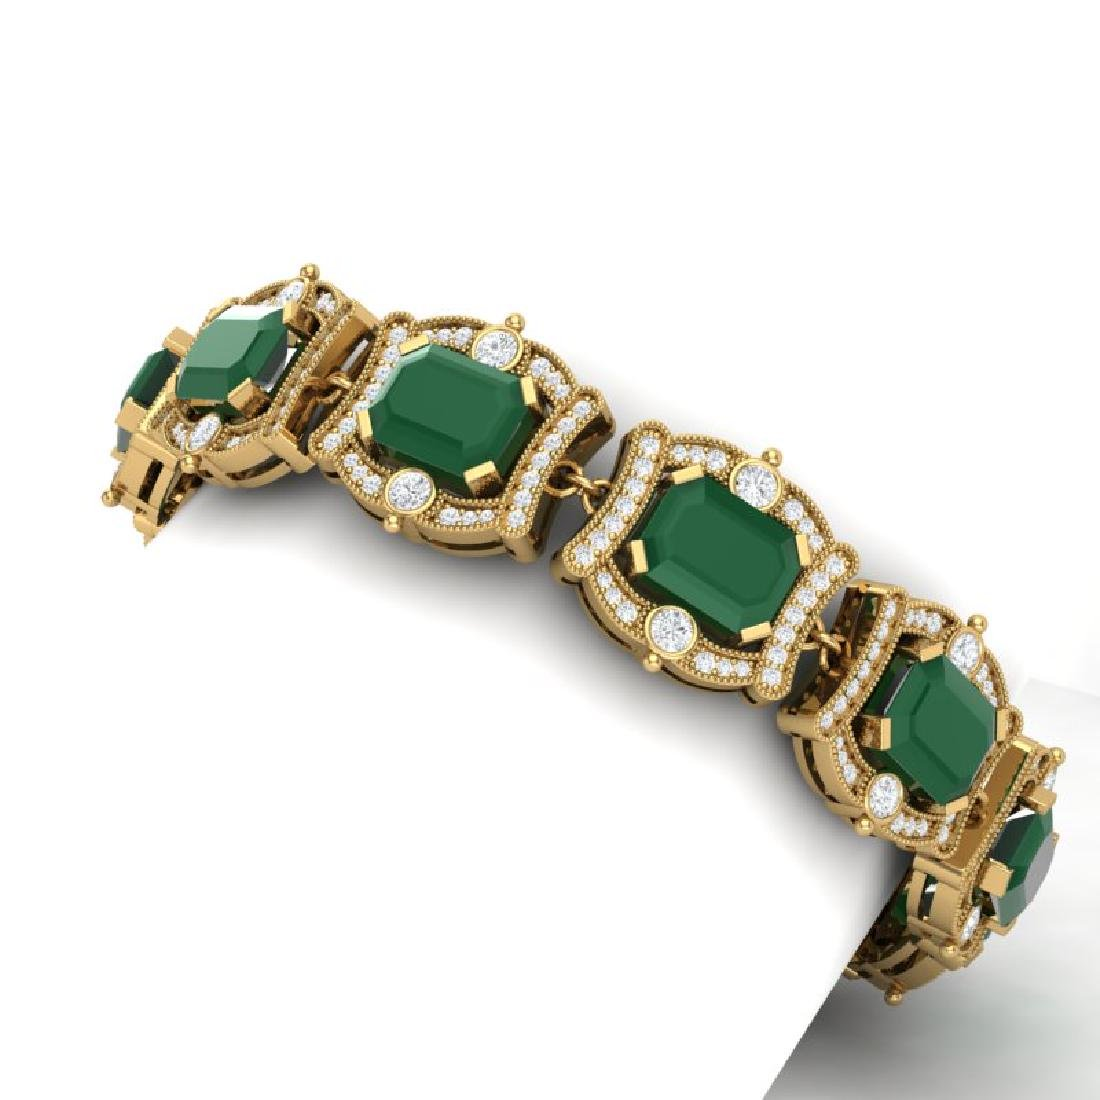 43.87 CTW Royalty Emerald & VS Diamond Bracelet 18K - 2